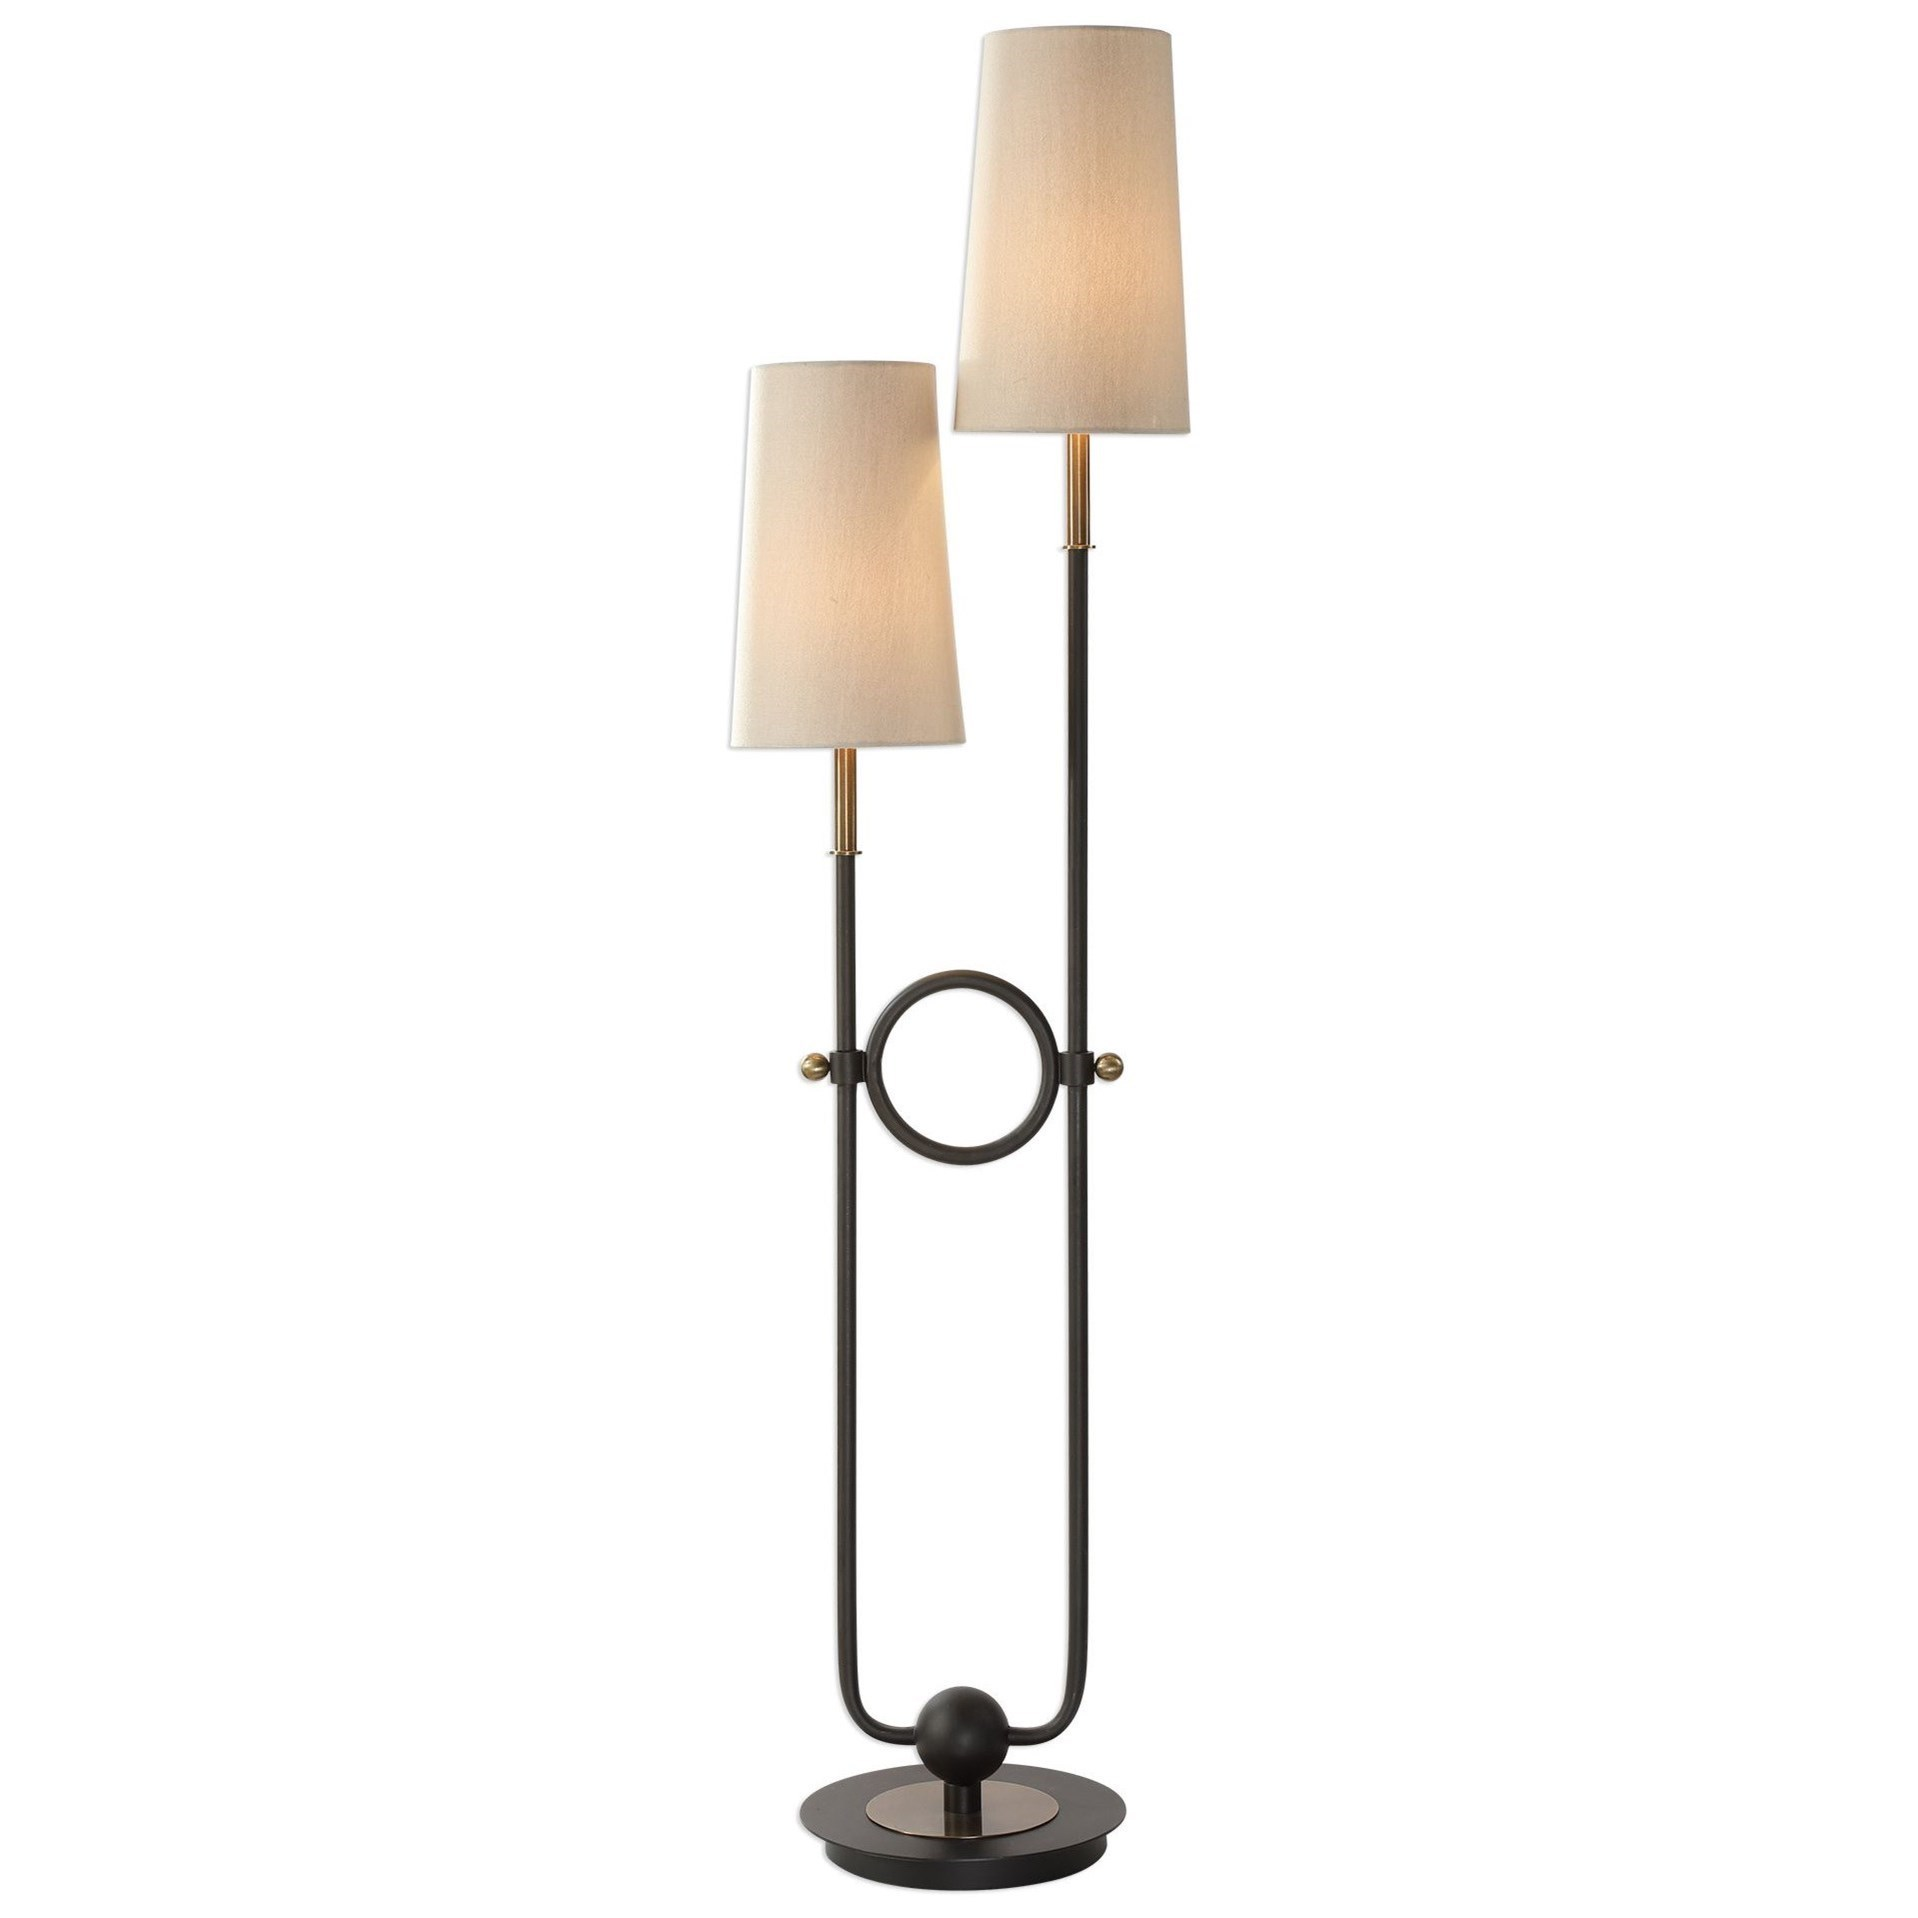 Arm Lamp Floor Lamps Riano 2 Arm 2 Light Floor Lamp By Uttermost At Hudson S Furniture